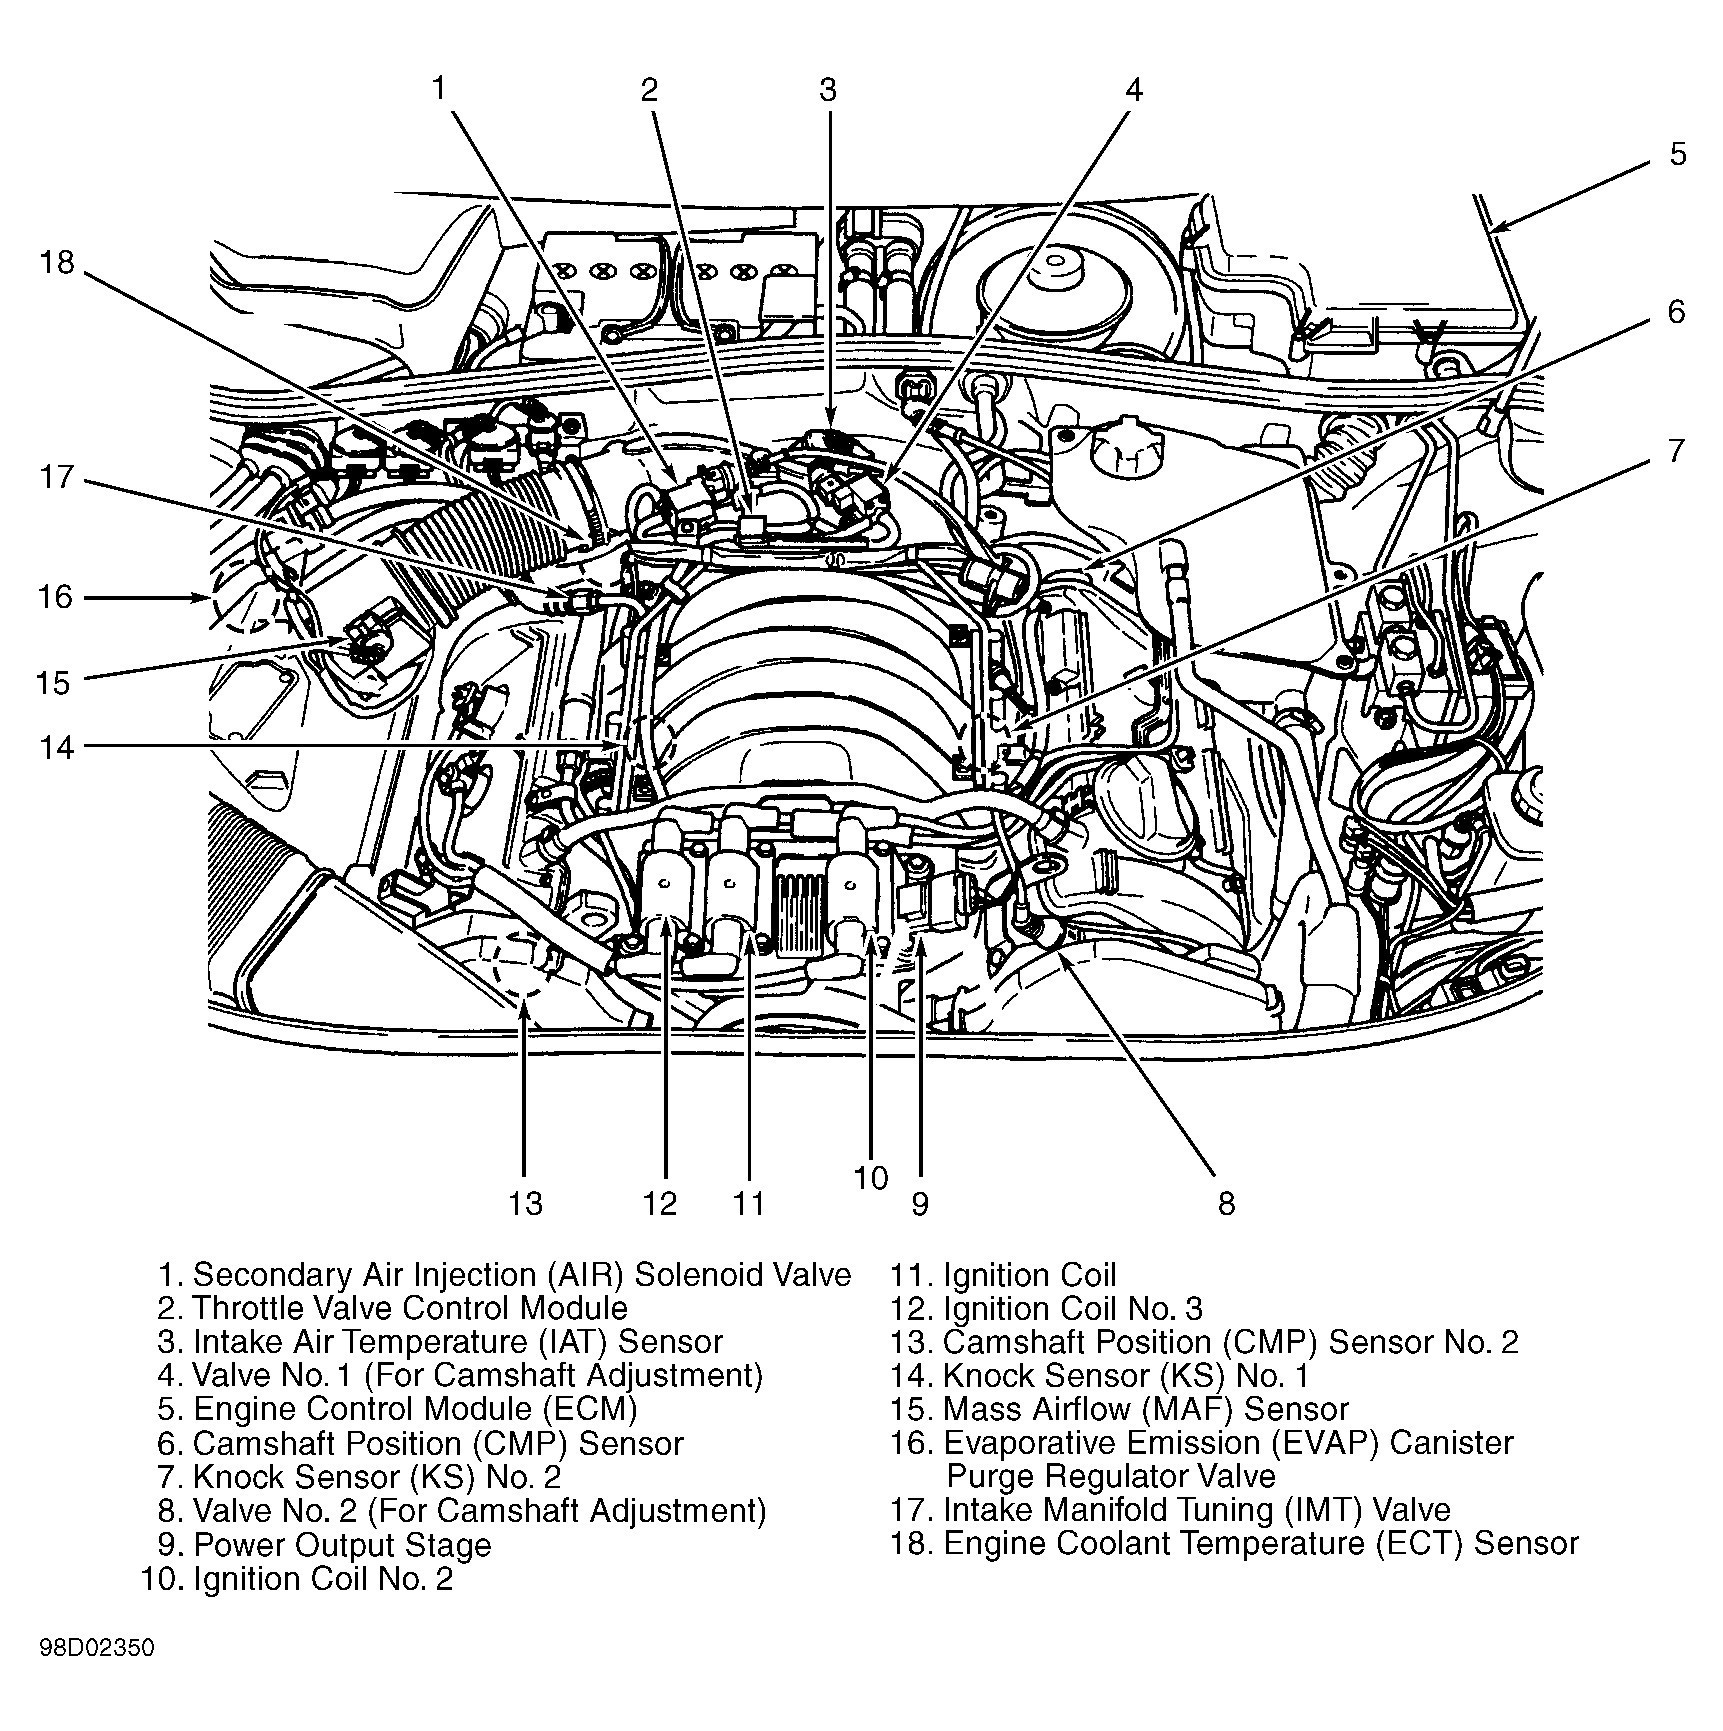 Audi S4 2 7t Engine Diagram - Data Wiring Diagram  Audi S Wiring Diagram on 01 mitsubishi eclipse wiring diagram, 01 chevy malibu wiring diagram, 01 dodge dakota wiring diagram,